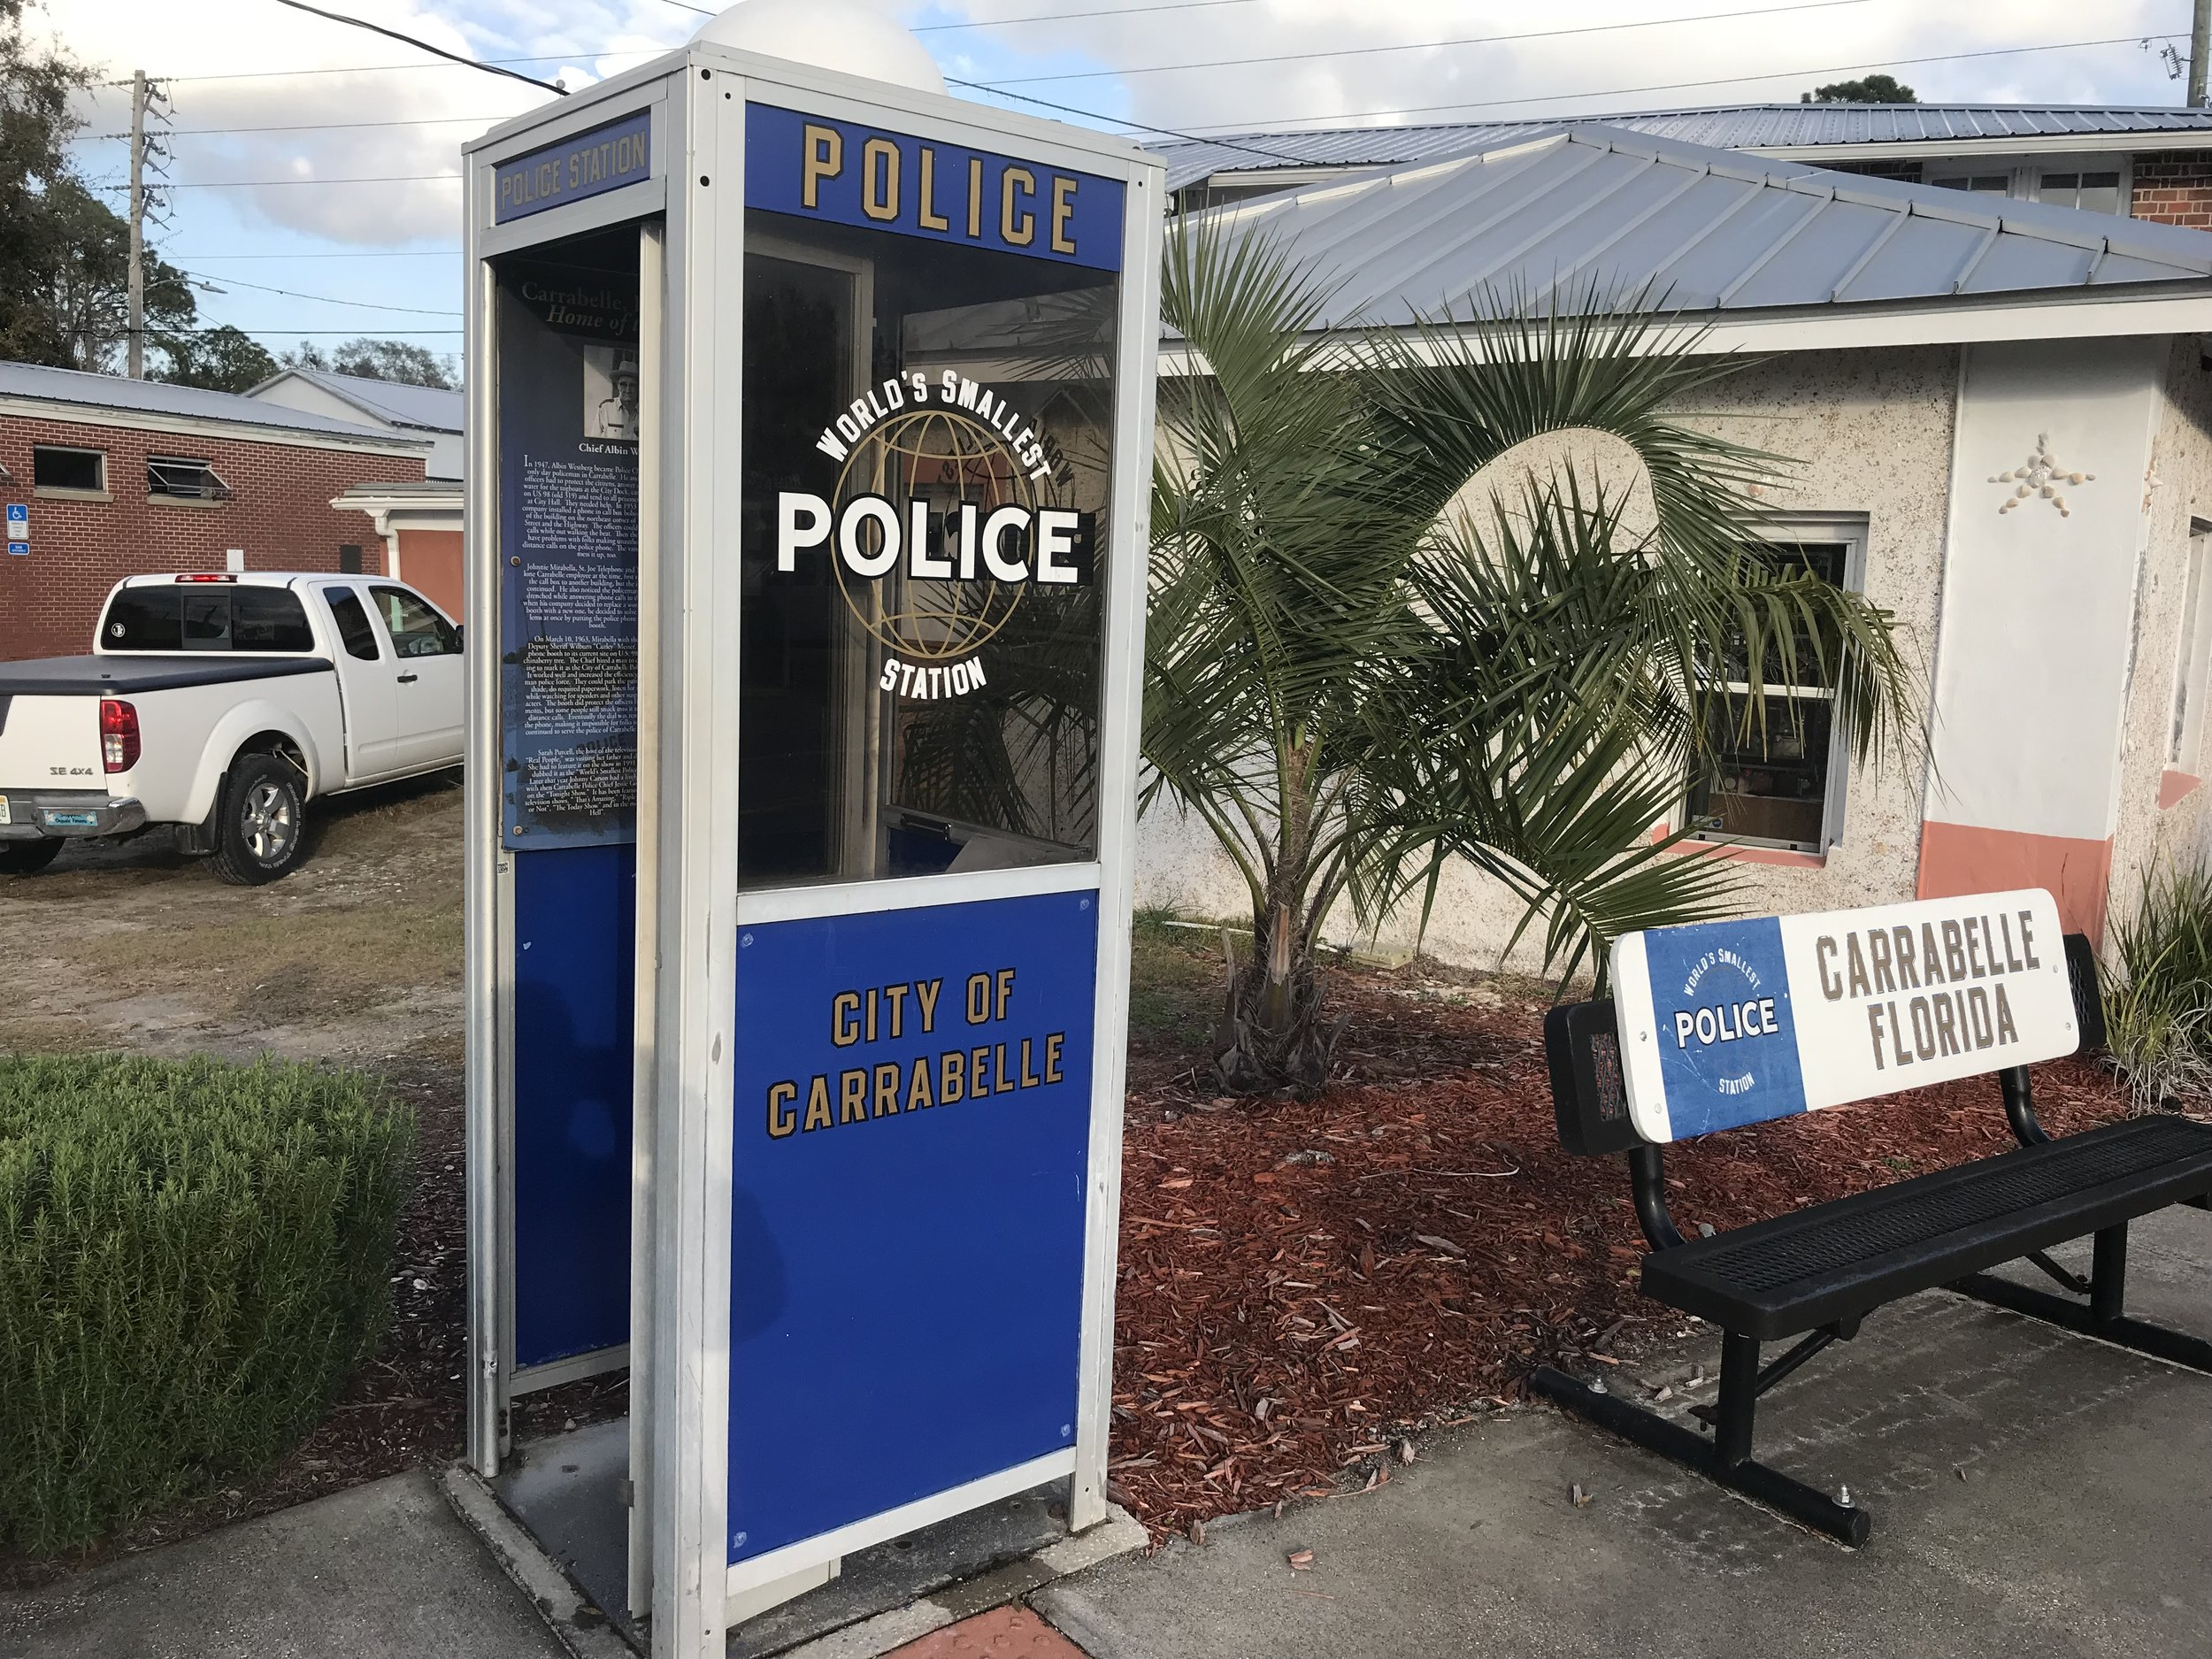 """The story of the police station in Carrabelle, Fla., located at the town's busiest intersection, sounds like an episode of """"Mayberry RFD."""""""